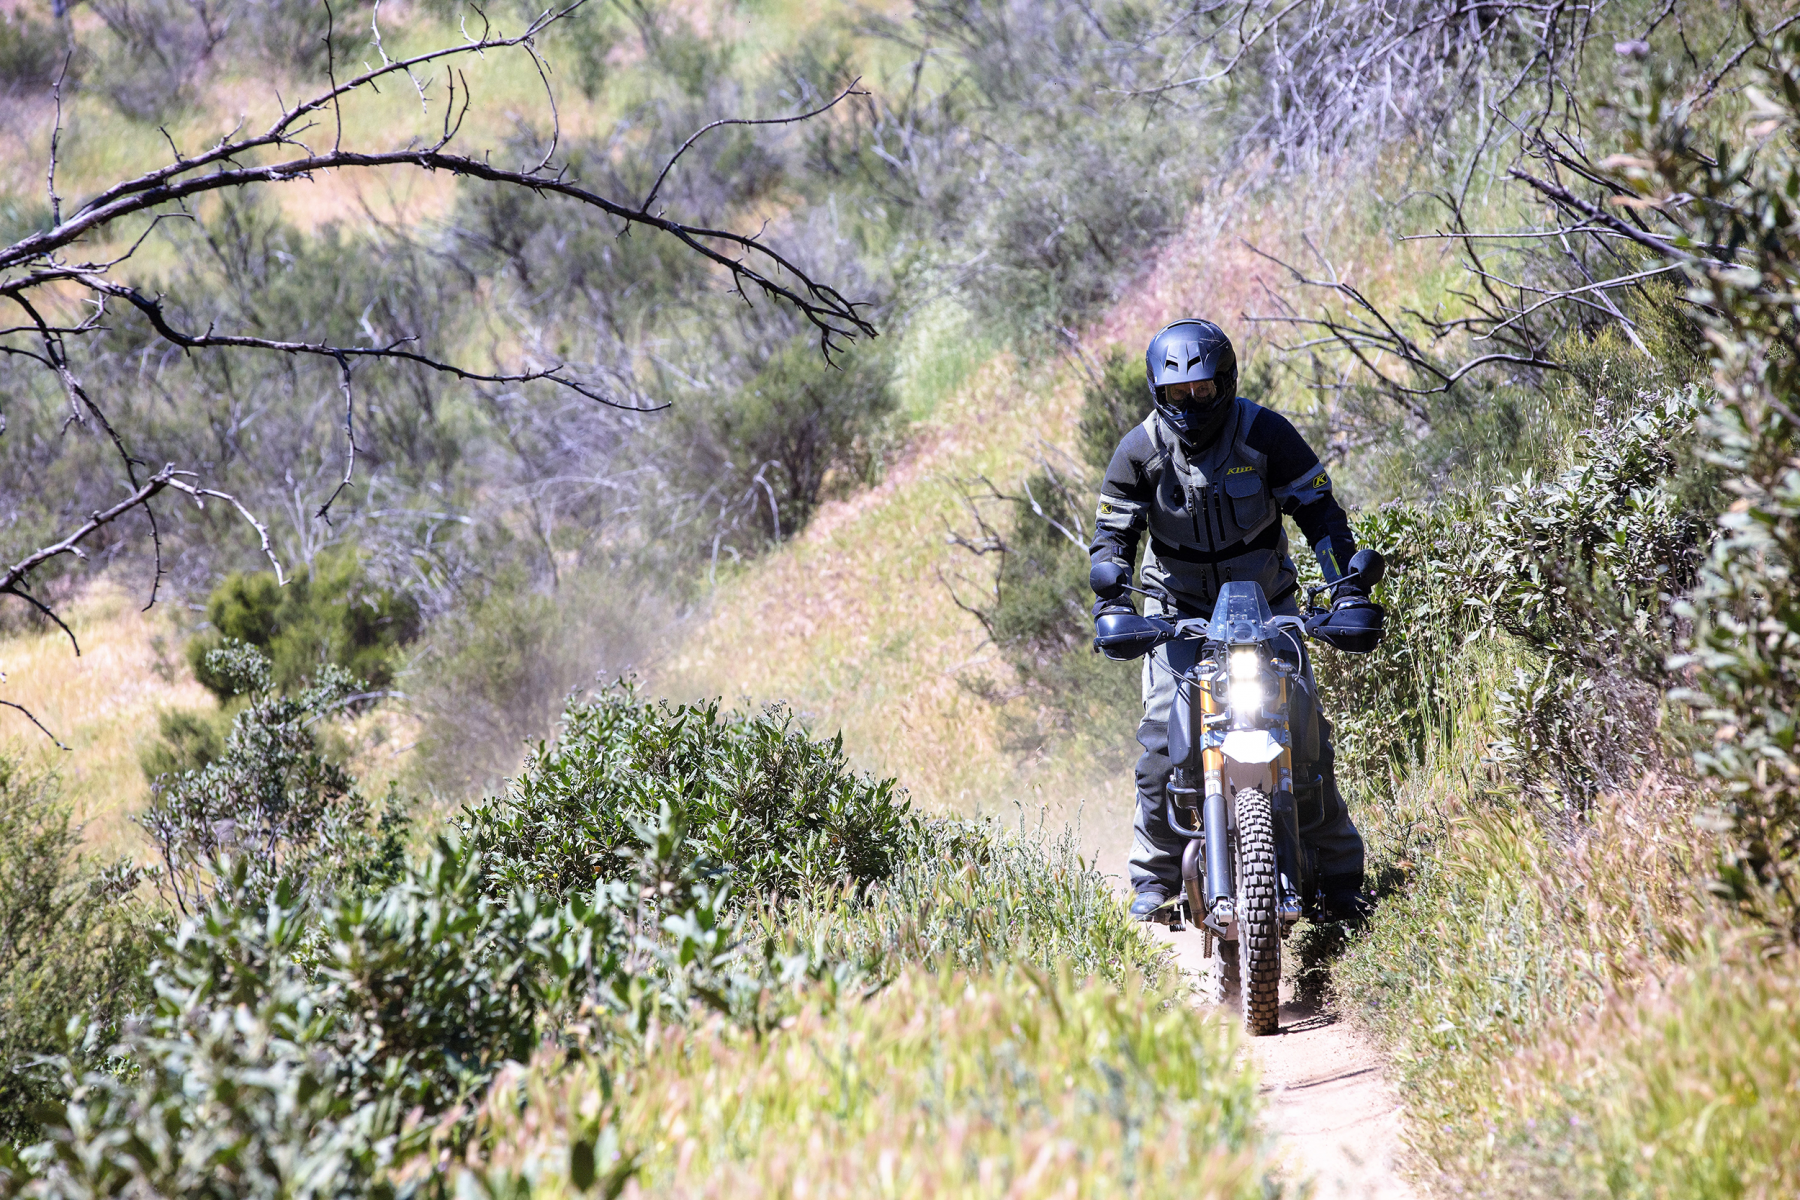 Jim Carducci on his SC3 Adventure on a single track trail